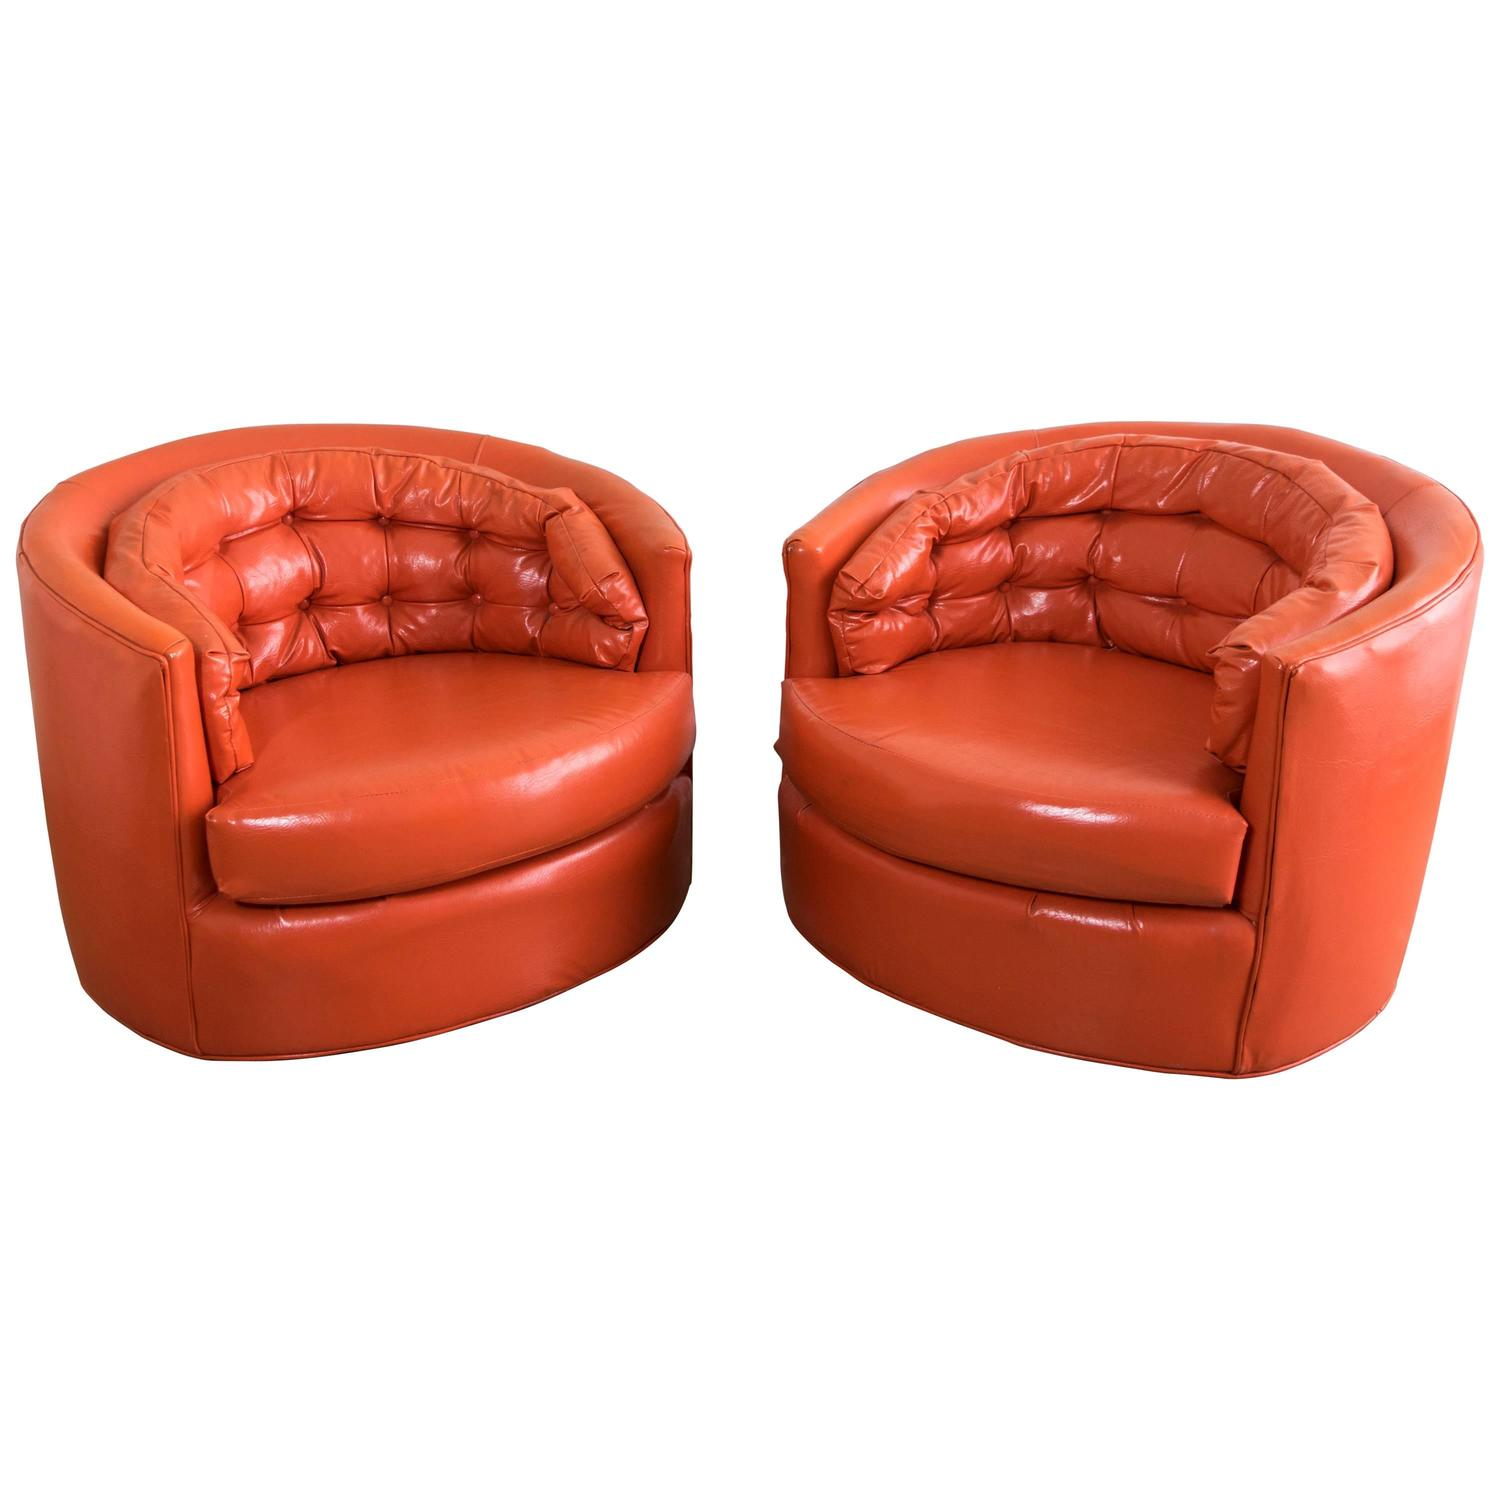 Pair Of Milo Baughman Swivel Club Chairs At 1stdibs